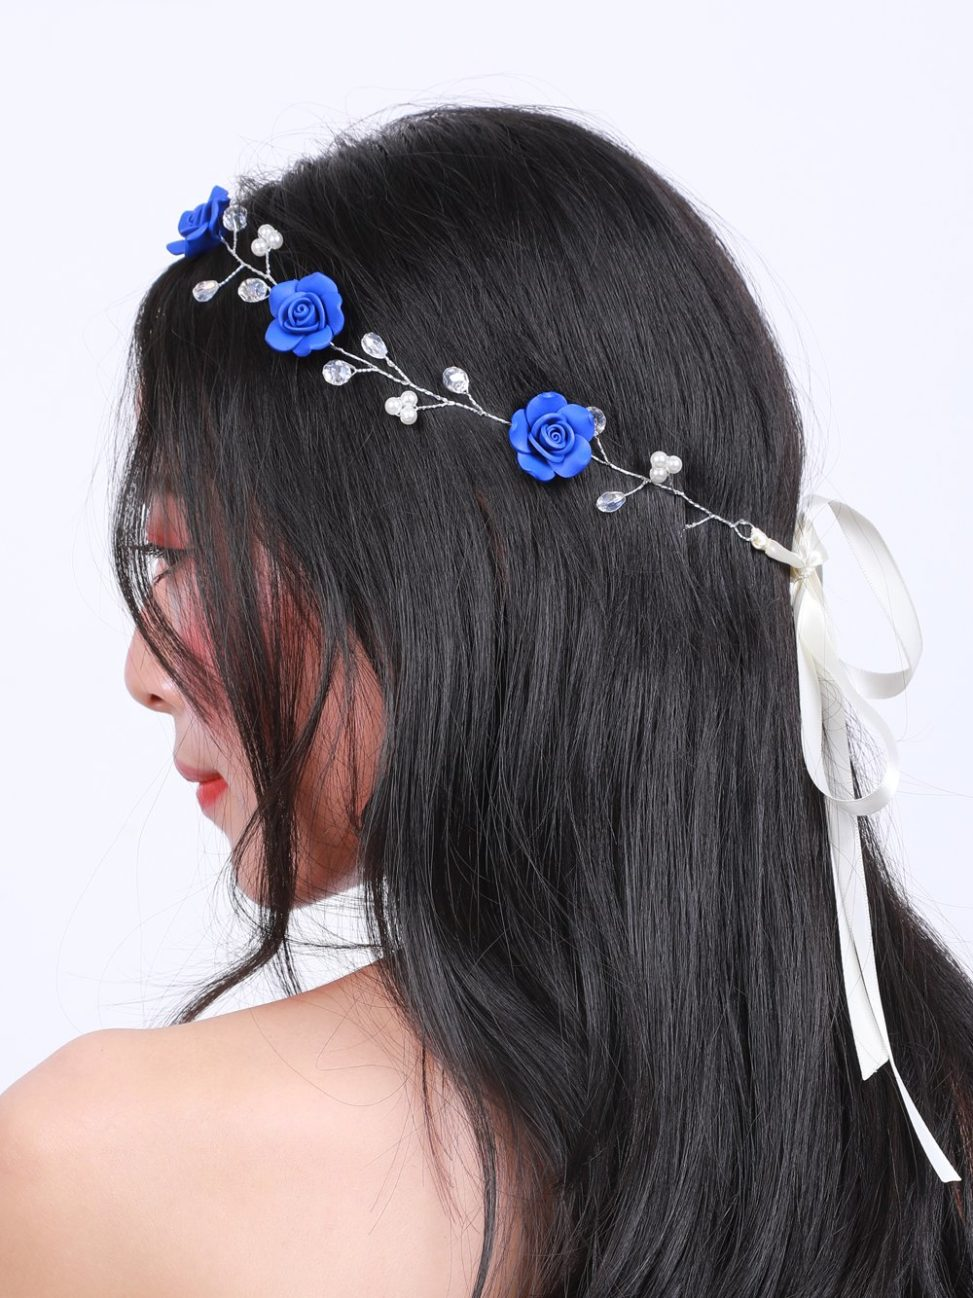 A navy blue flower headband